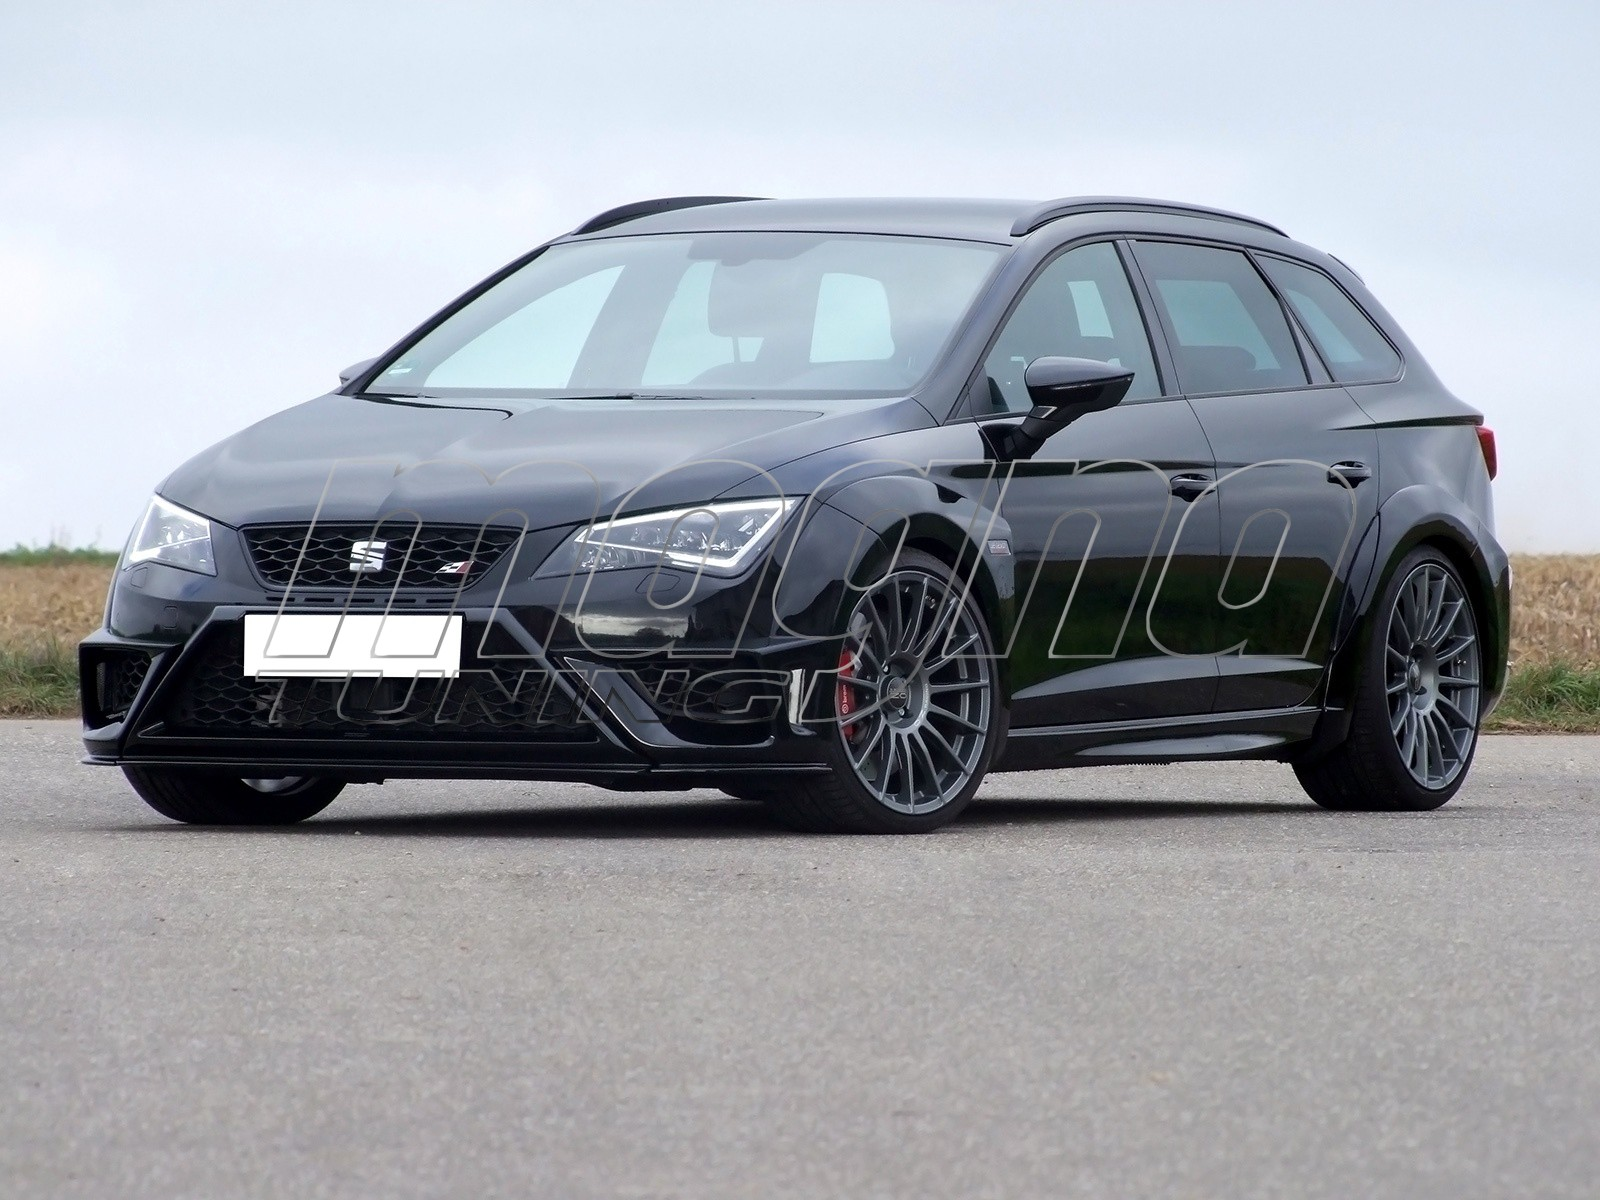 seat leon 5f fr cupra st e2 wide body kit. Black Bedroom Furniture Sets. Home Design Ideas